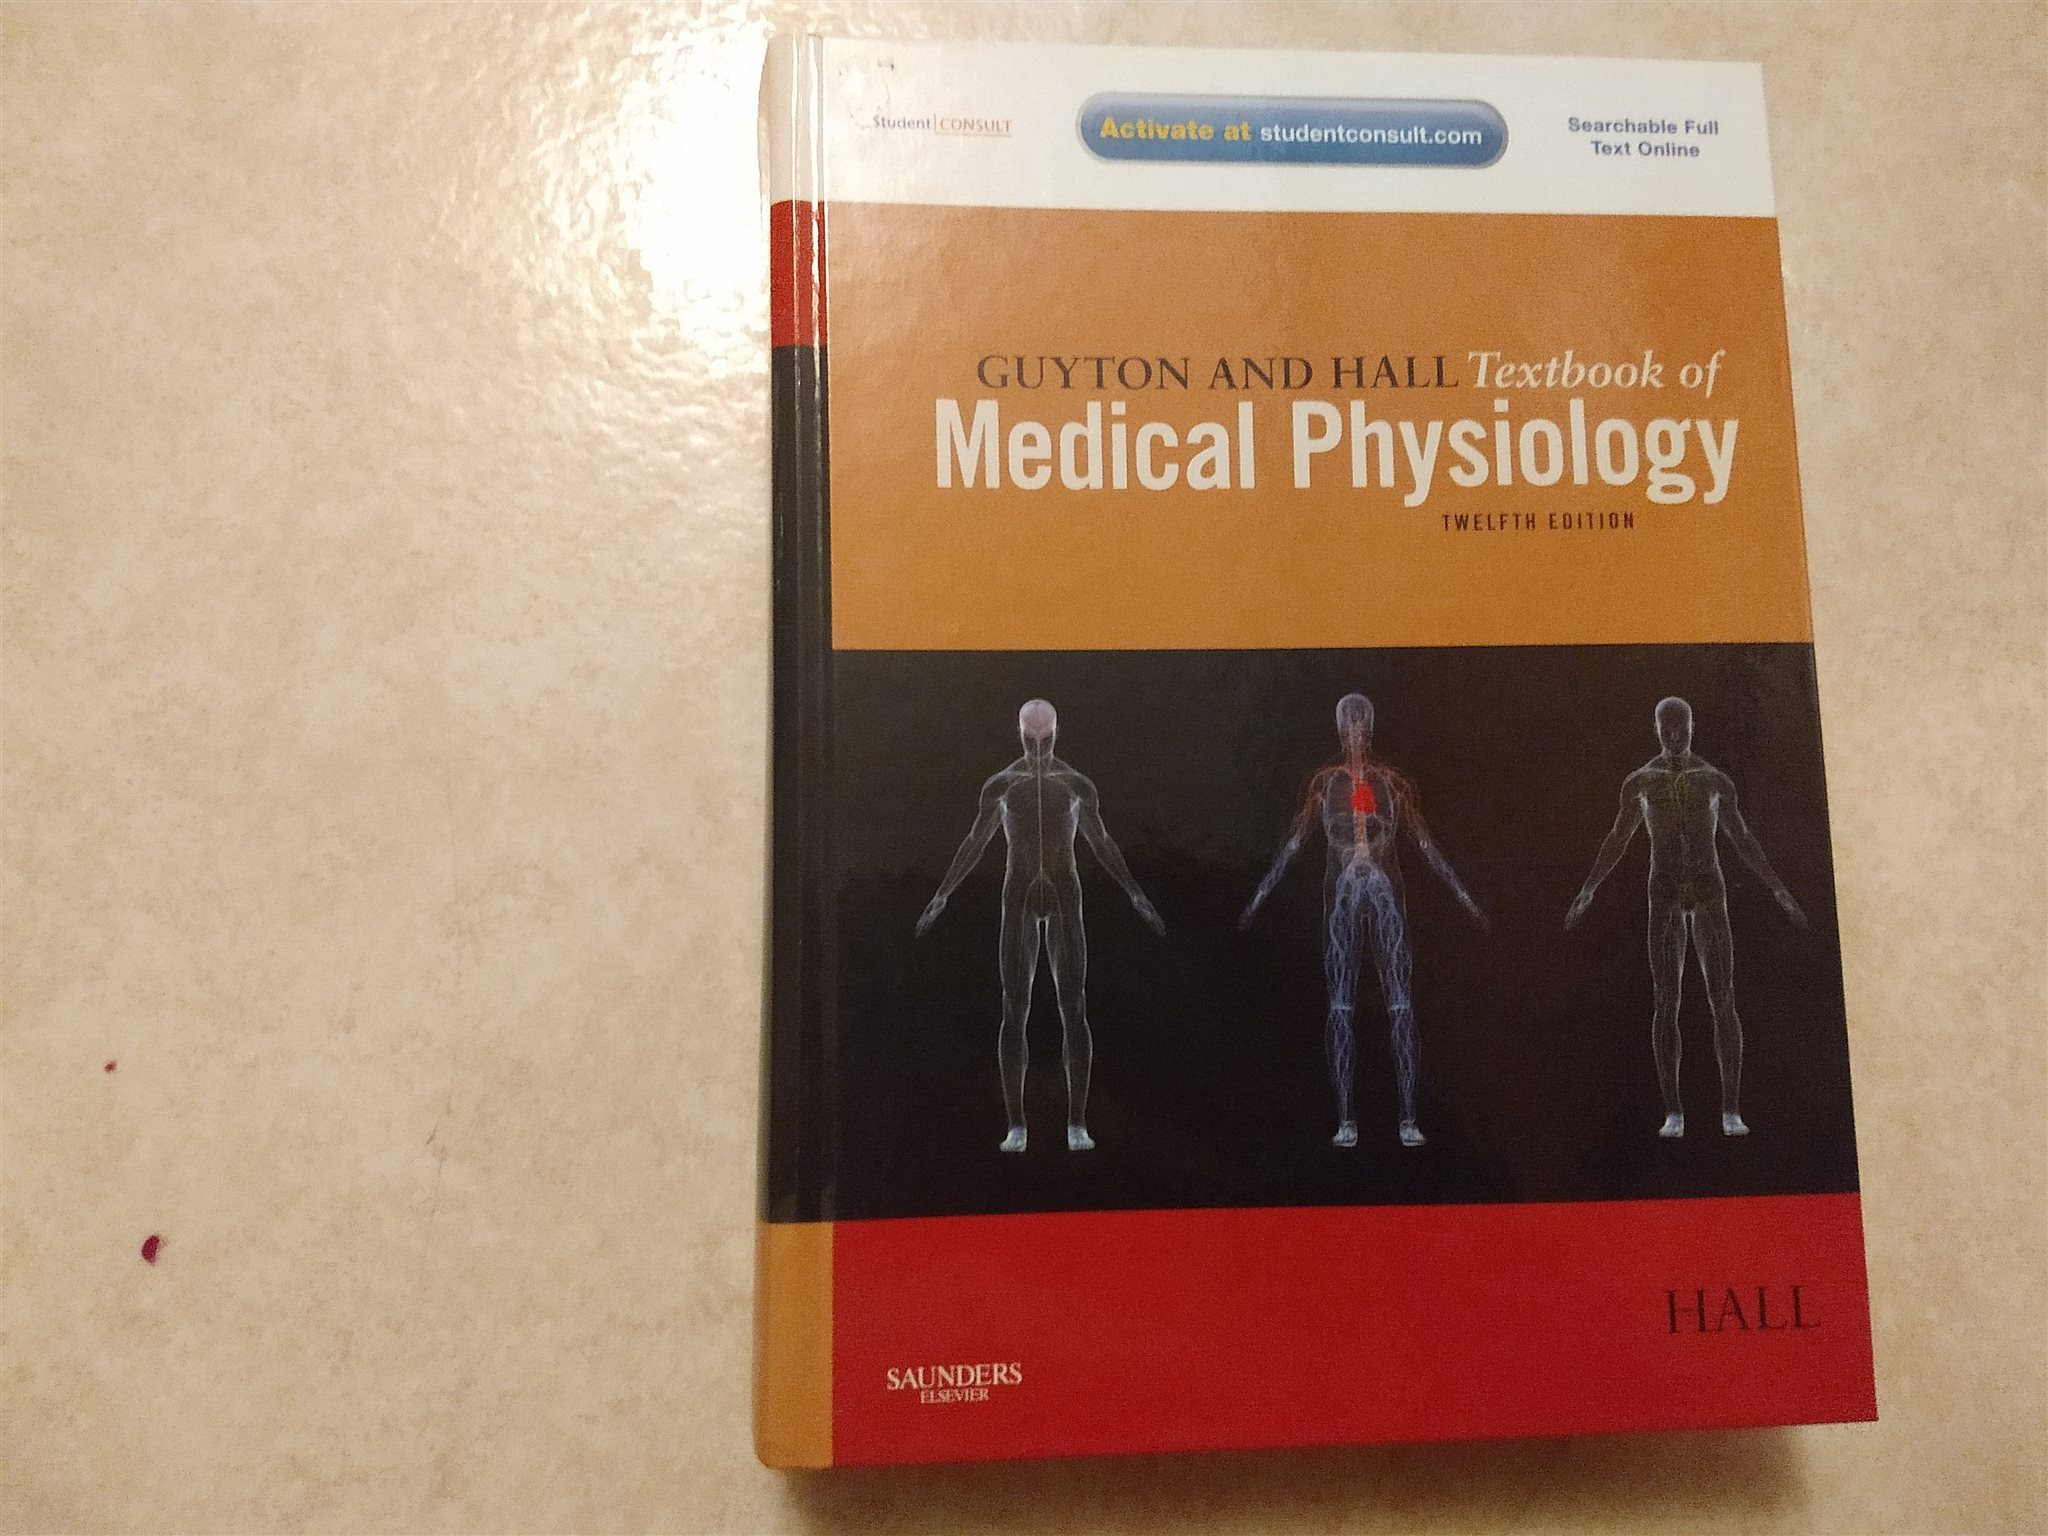 Textbook of medical physiology Guyton and Hall. 2011. ISBN 978-1-4160-4574-8.